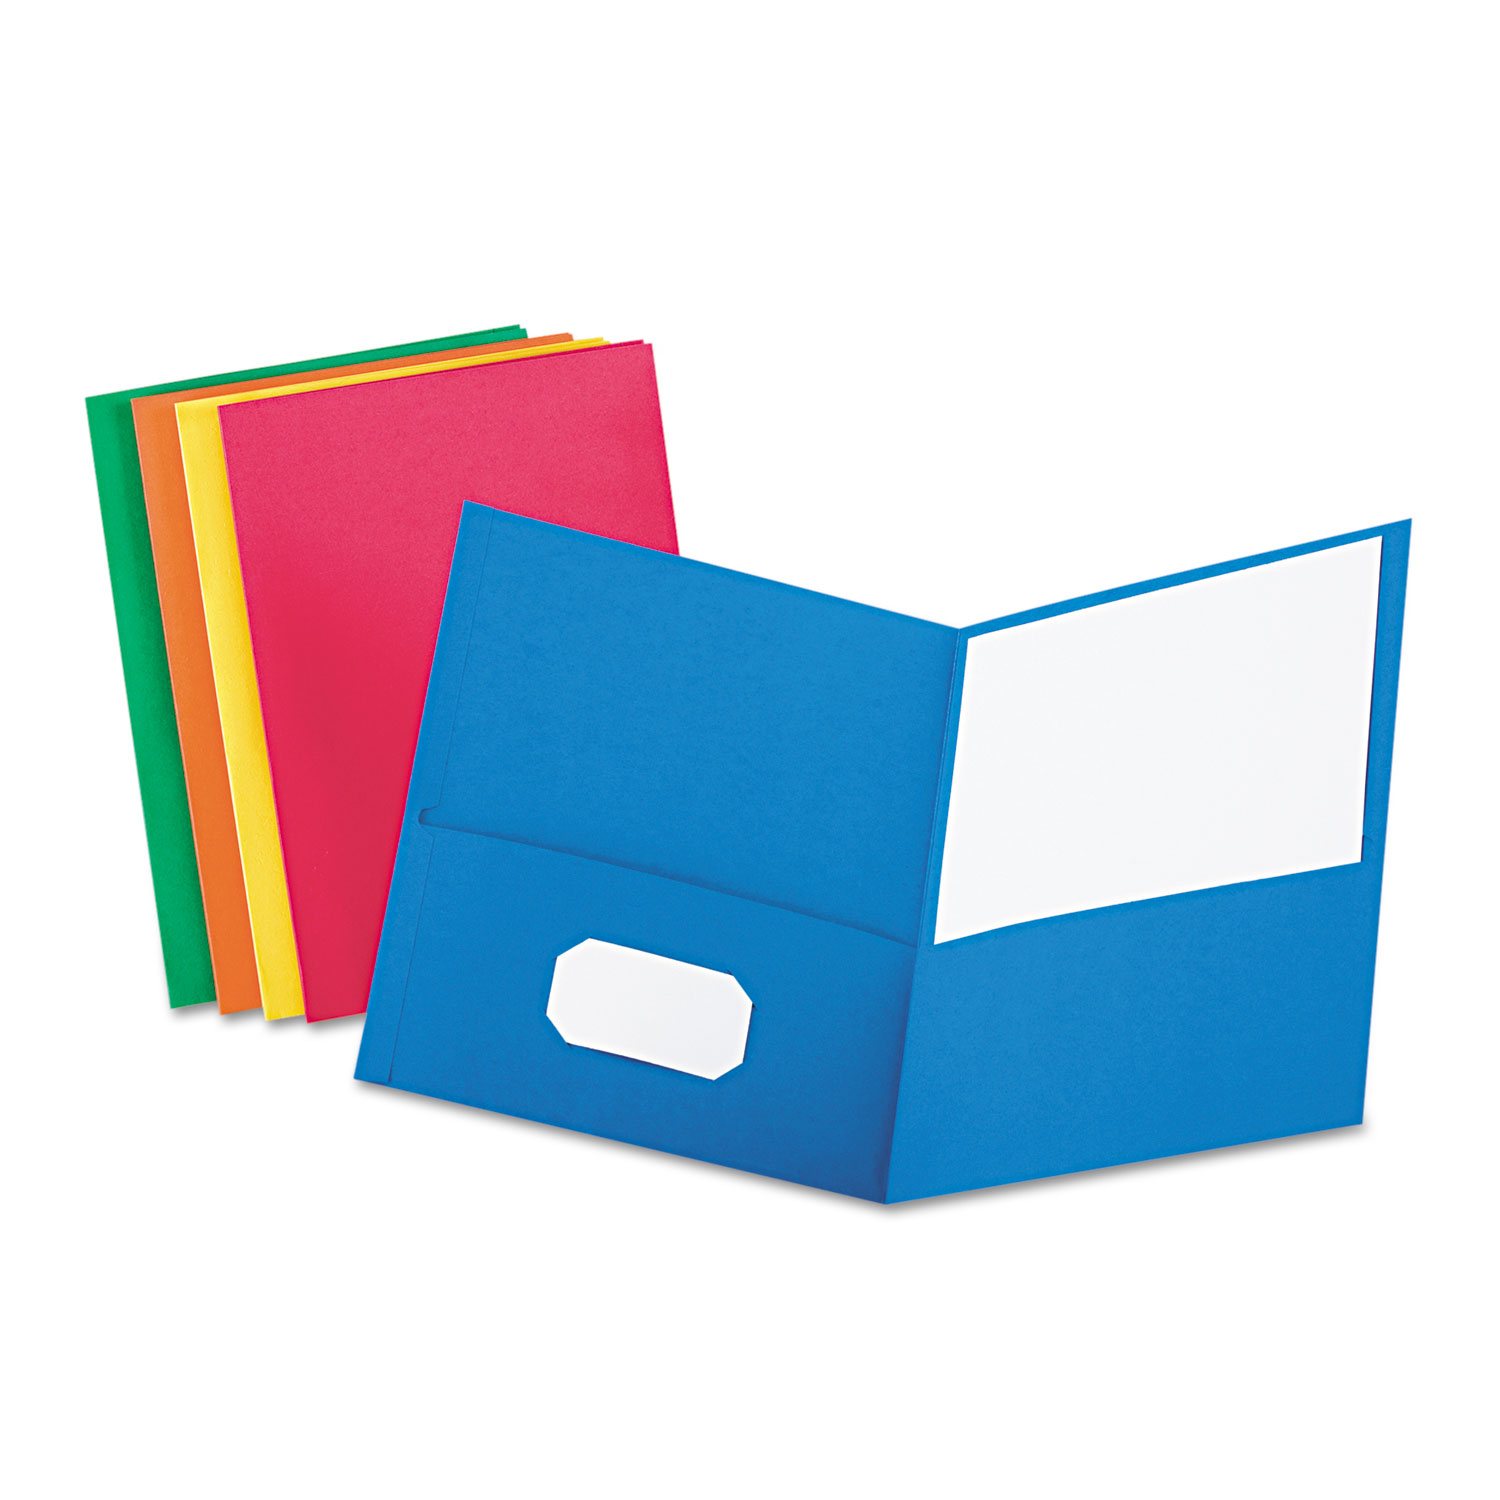 A couple of years ago, I added a new aspect to my teaching of Language Arts; I began incorporating Poetry Journals. Each student has their own Poetry Journal (a cheap 3-prong folder) that holds a copy of all the poems and songs that we use in the classroom.